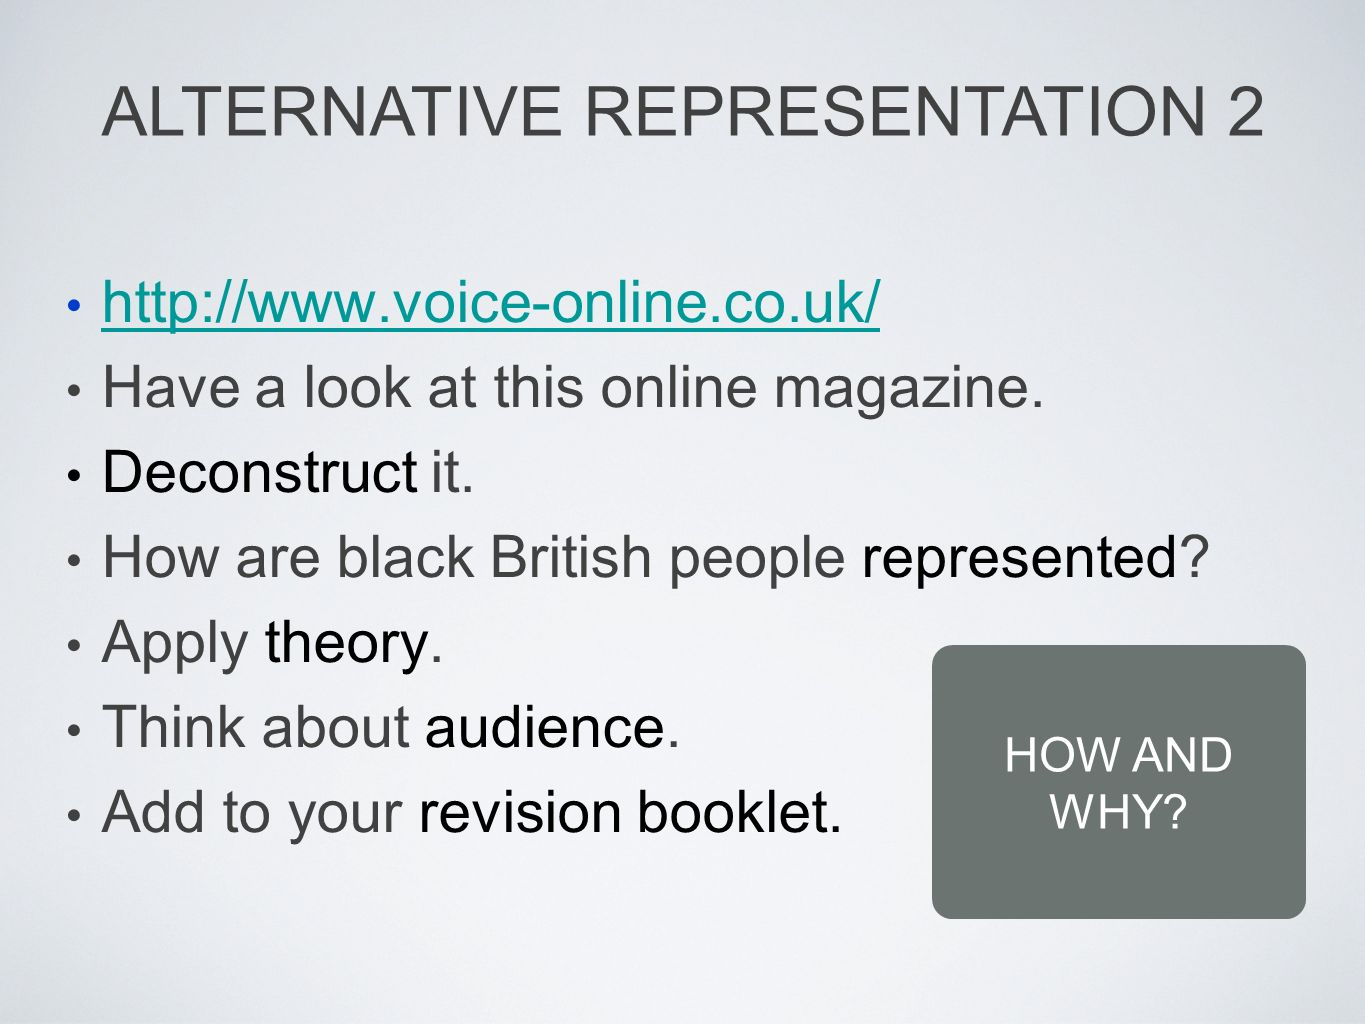 http://www.voice-online.co.uk/ Have a look at this online magazine.